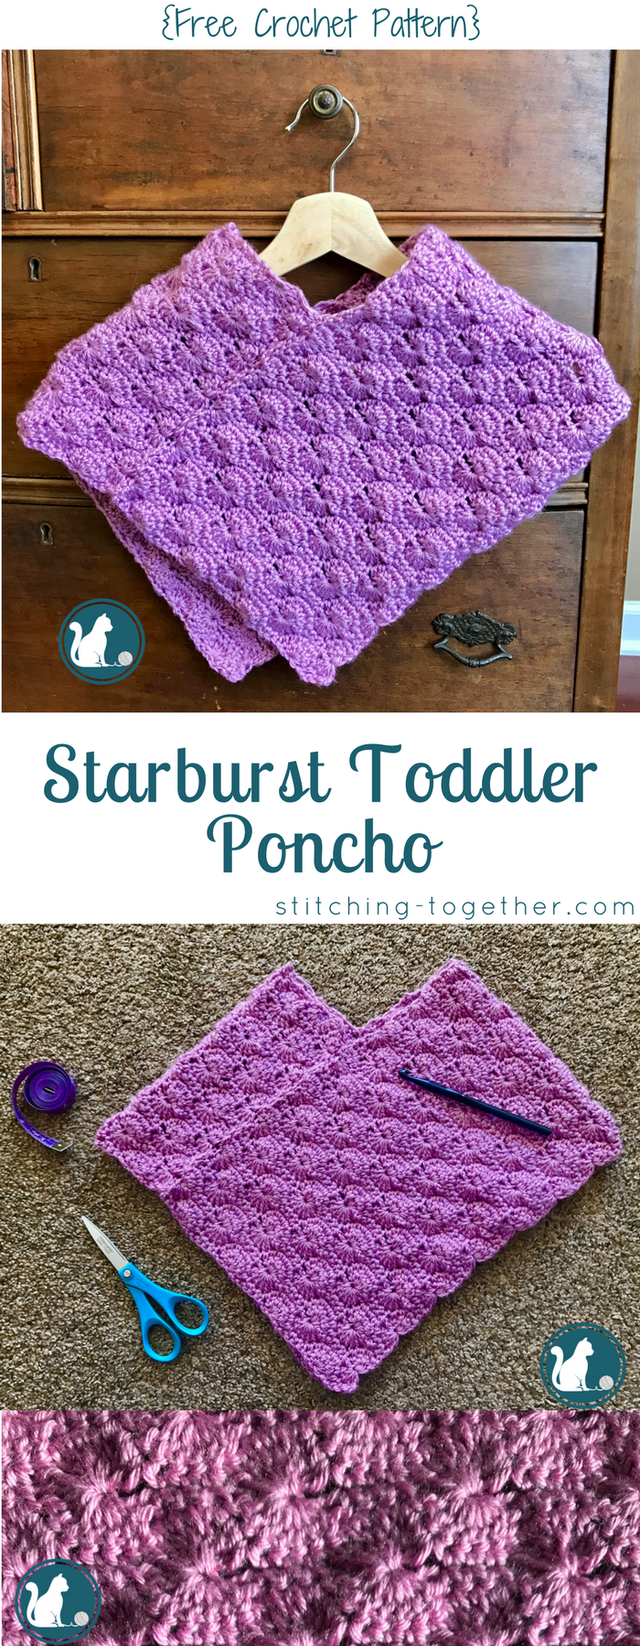 Starburst Toddler Poncho {Free Crochet Pattern | Toddler poncho ...